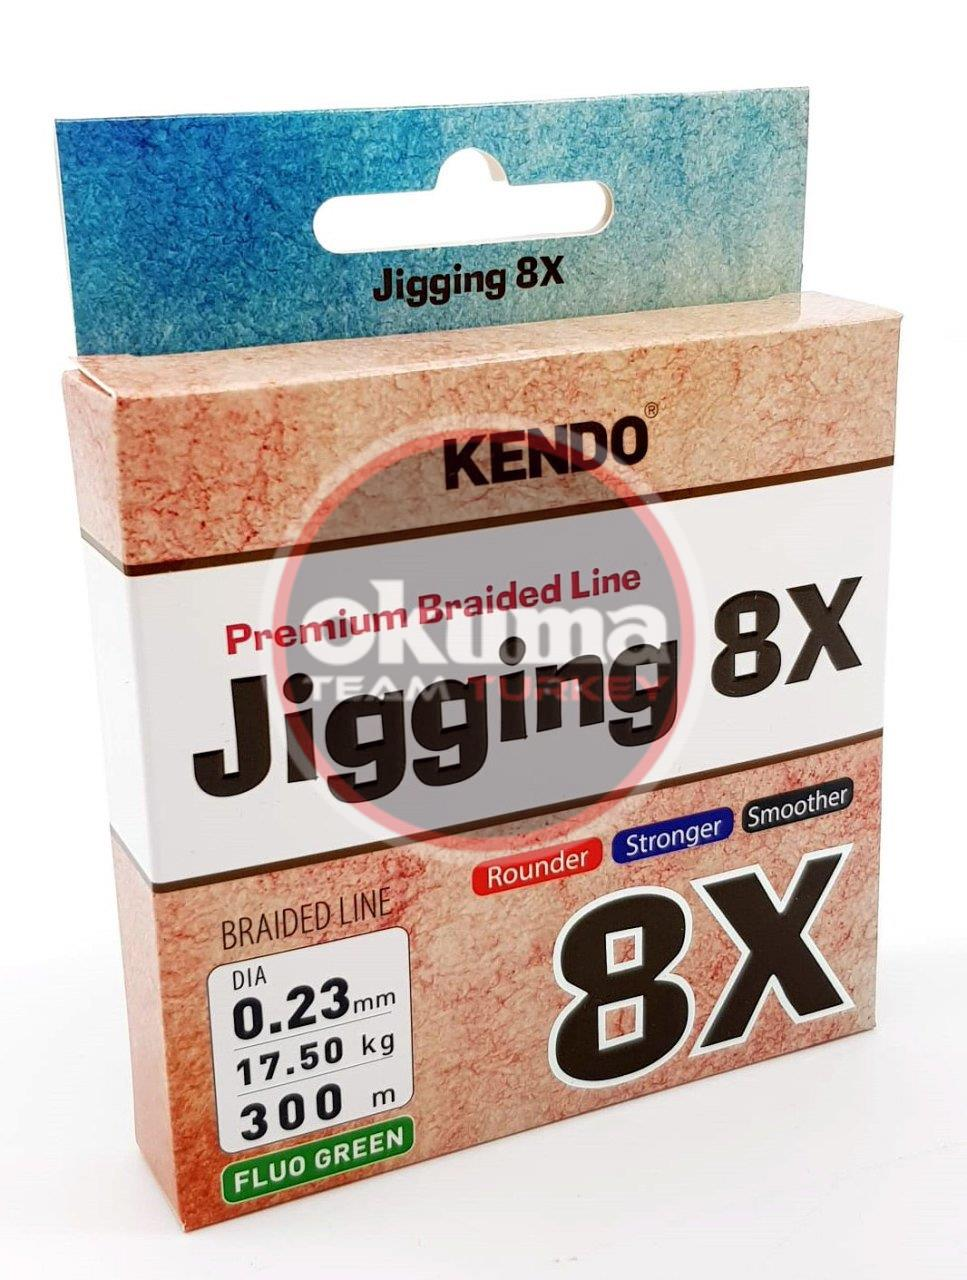 Kendo Jigging 8X Flash 300 mt Örgü İp (FLUO GREEN)